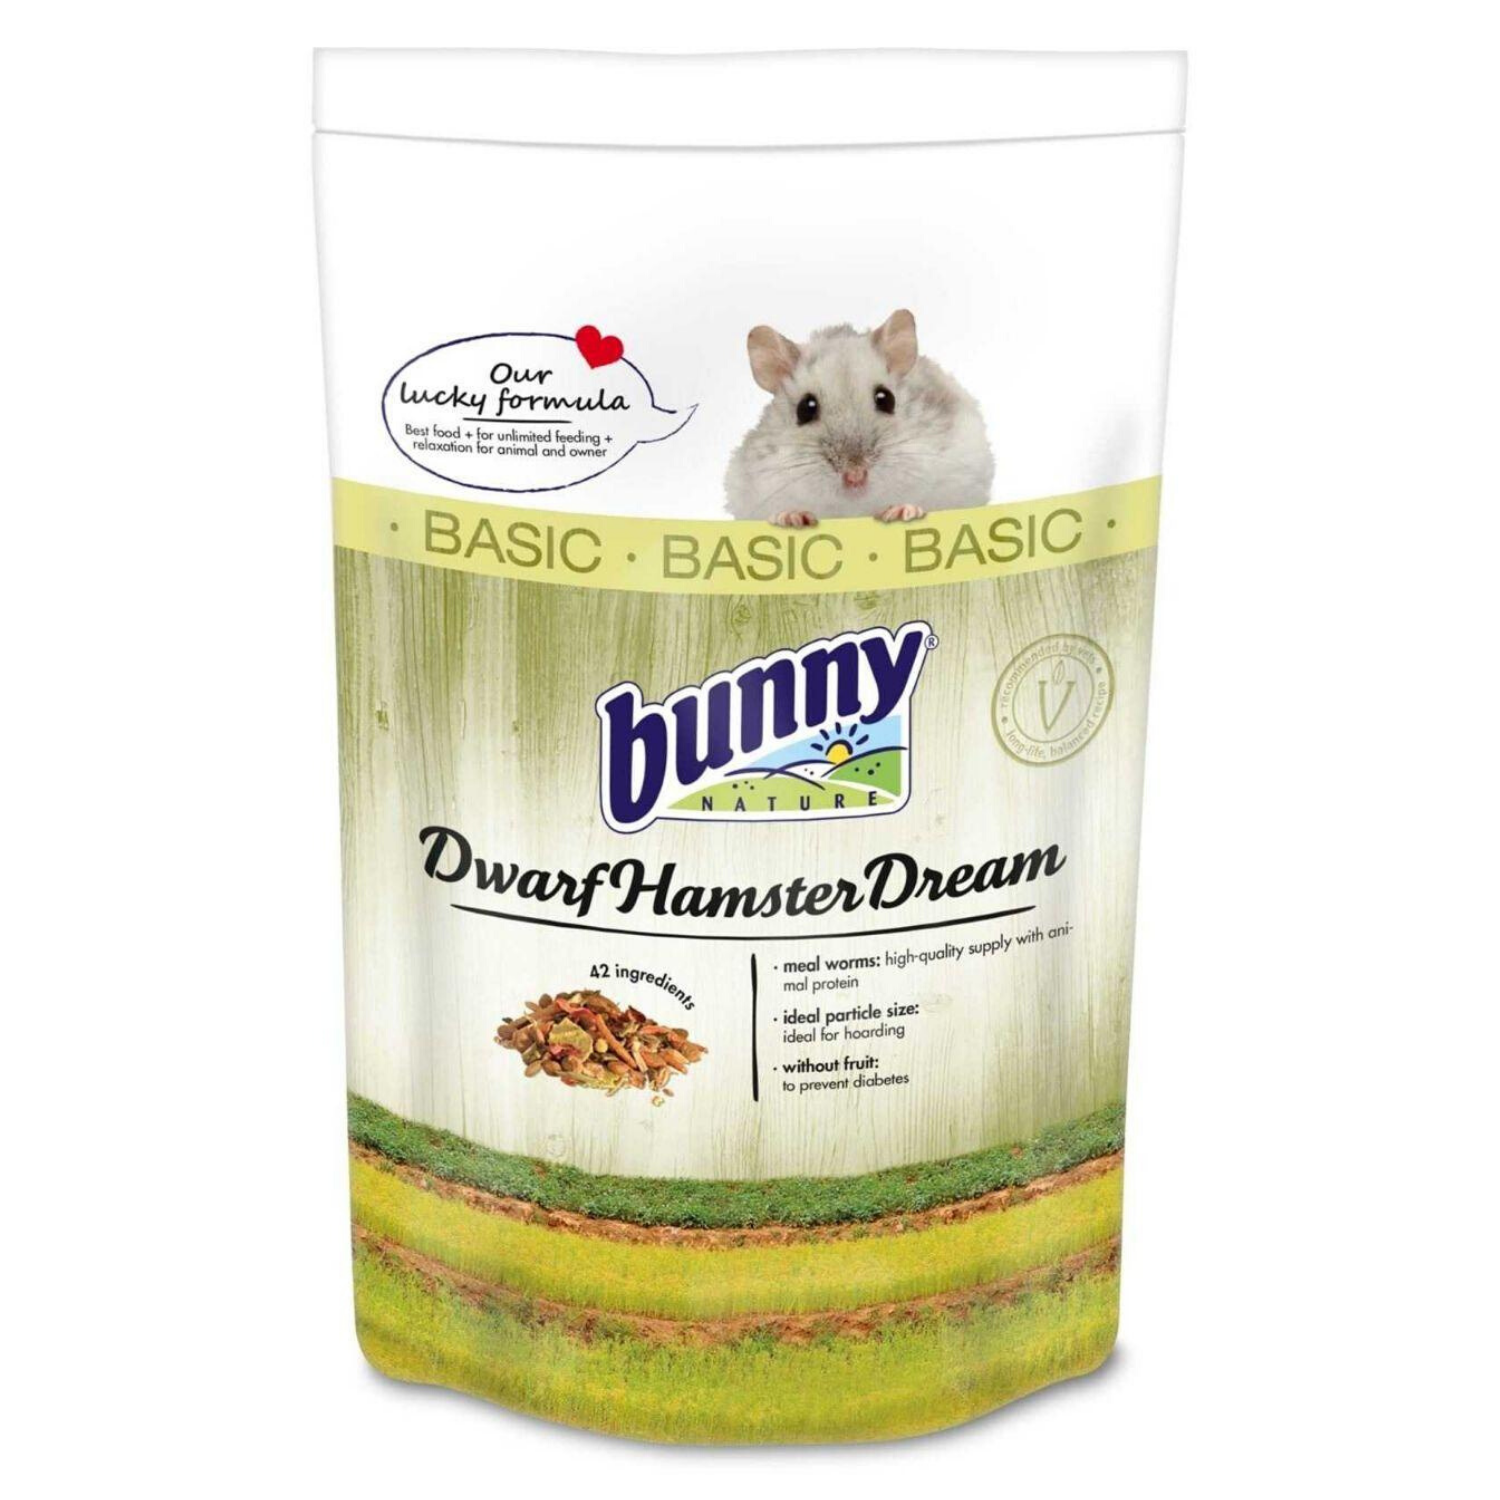 Bunny Nature Dwarf Hamster Dream Basic - 600g